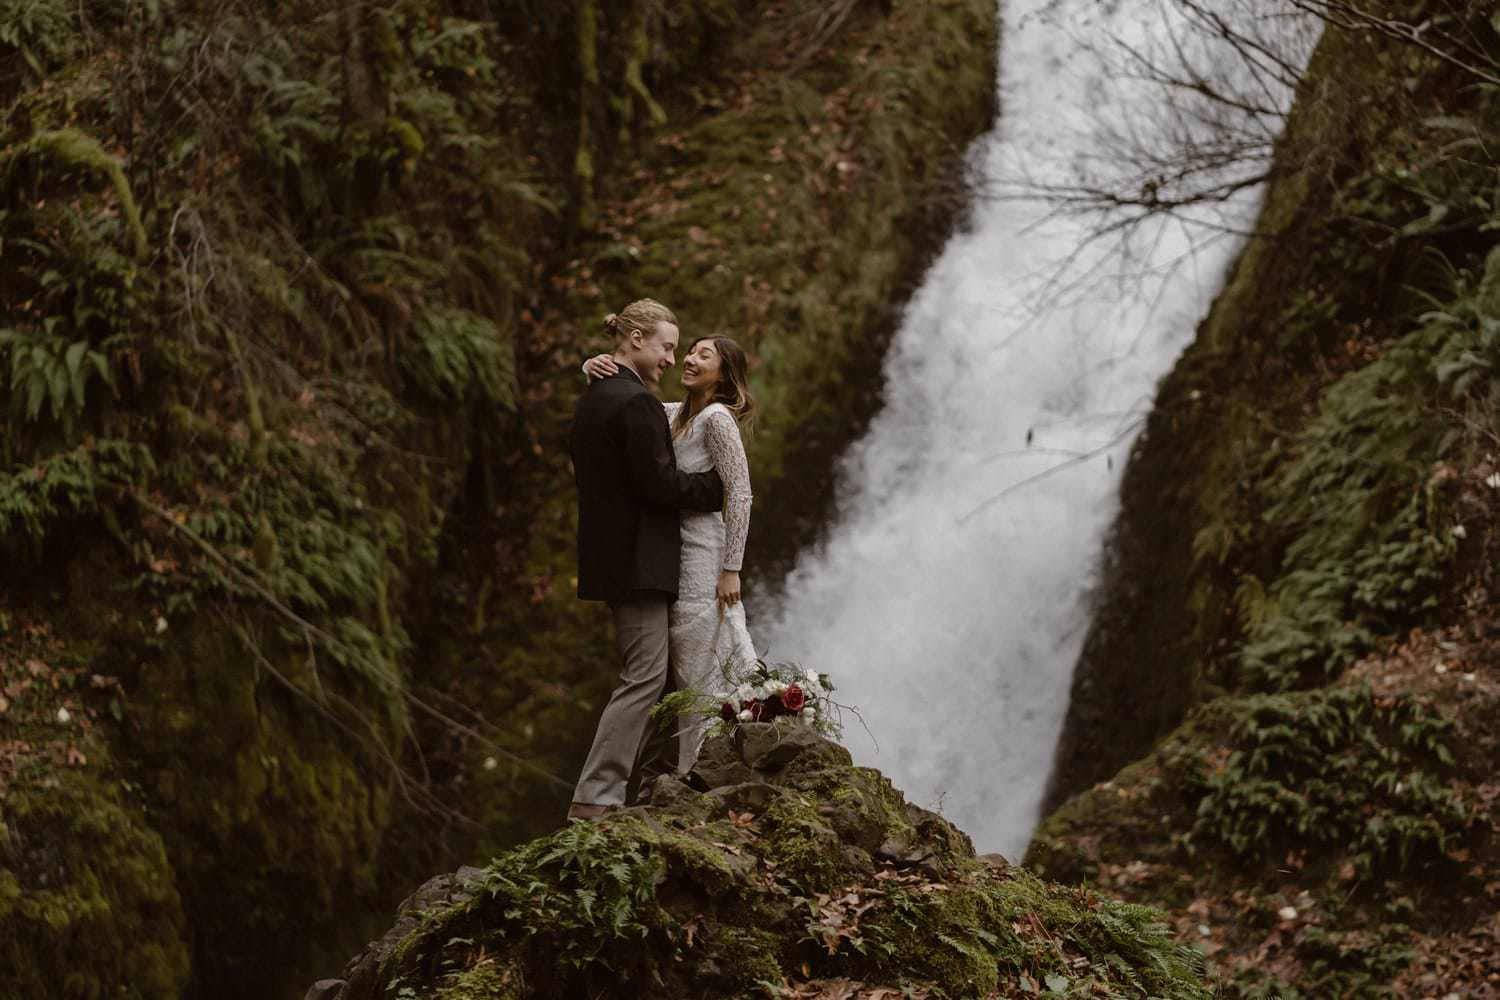 Bride and groom Laughing Waterfall Elopement Oregon